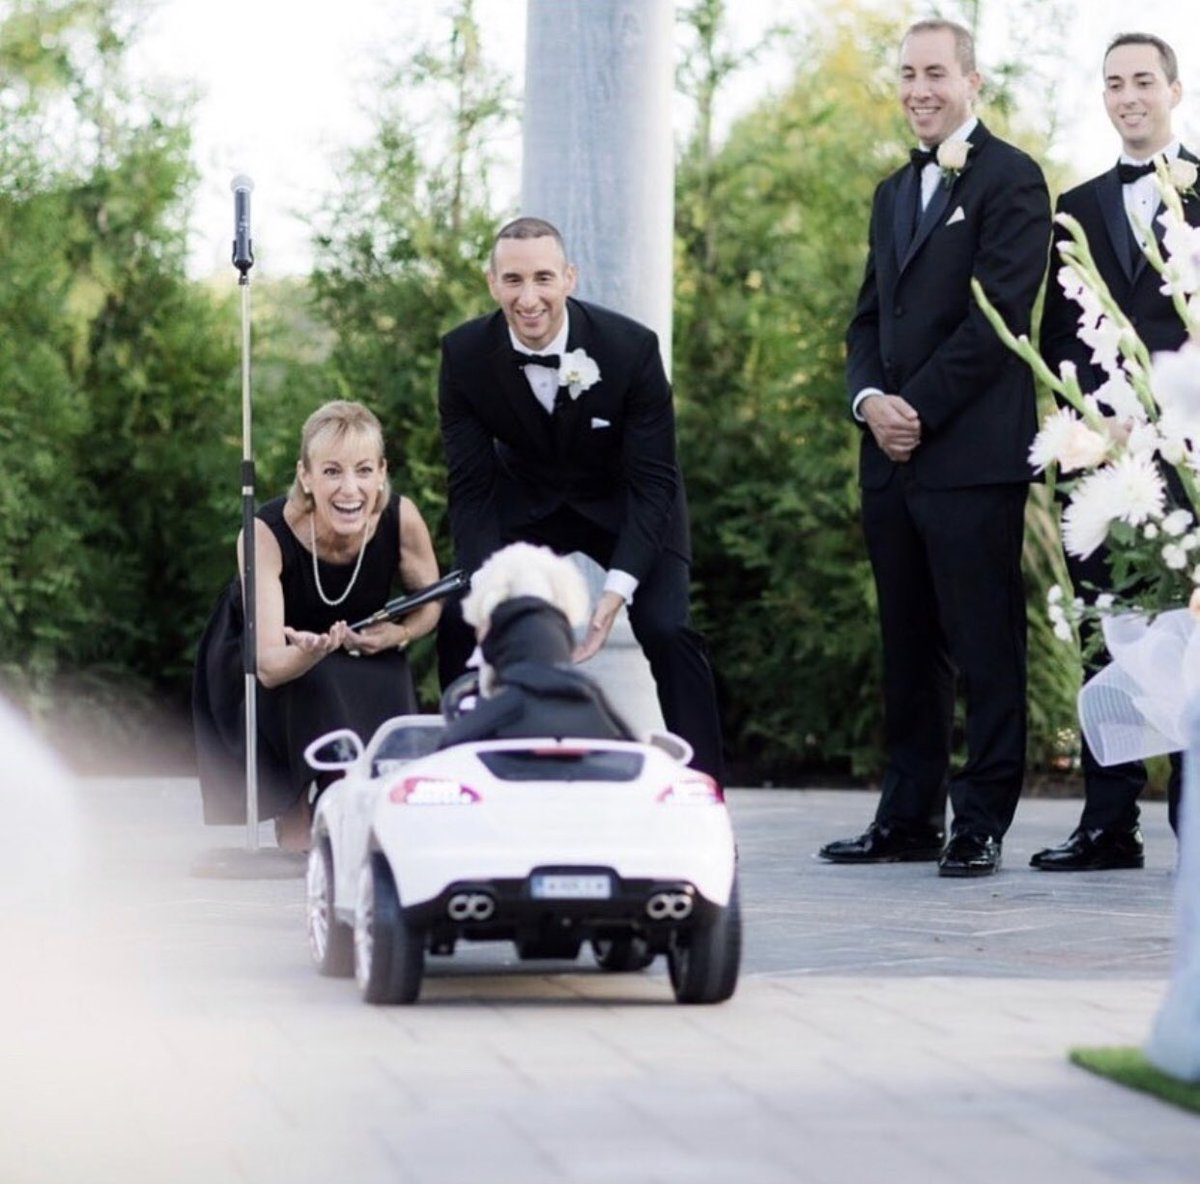 Special memories are made at weddings...    Love & Light Wedding Officiants: https://www.njwedding.com/new-jersey/morristown/wedding-services/love-light-wedding-officiants…  #njwedding #njweddings #nj #weddingmoments #weddinginspo #weddingmemories #newjersey pic.twitter.com/FacEtQOlTj